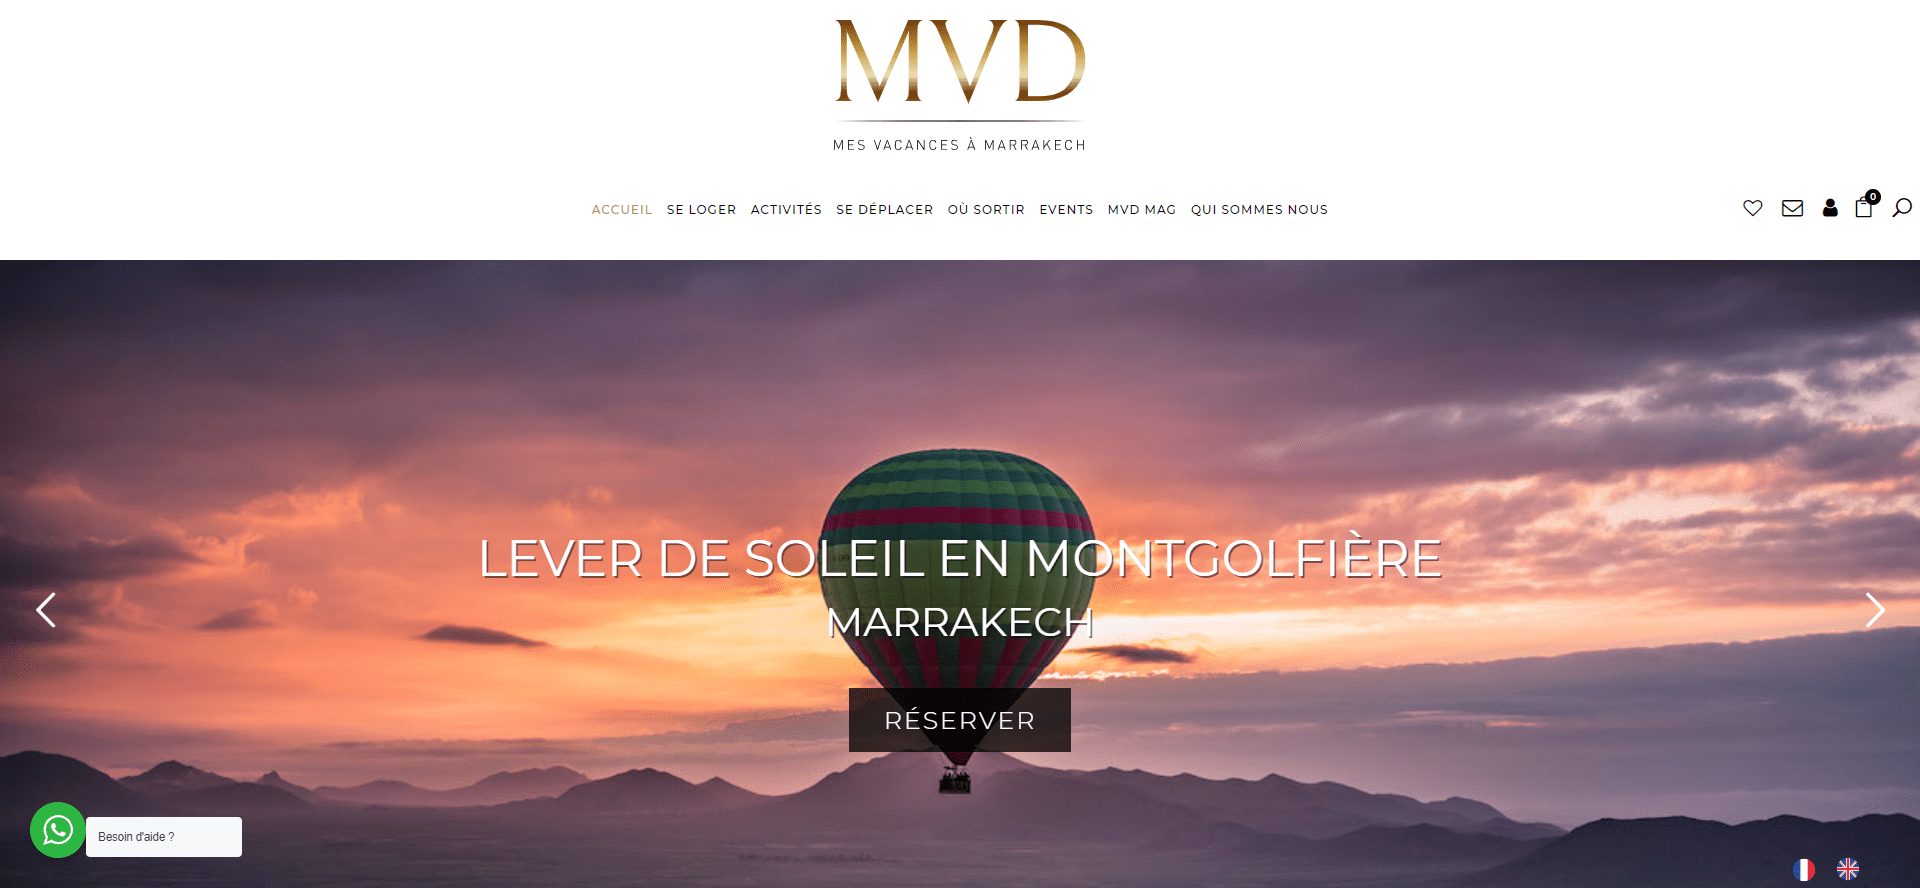 mvd-marrakech-home